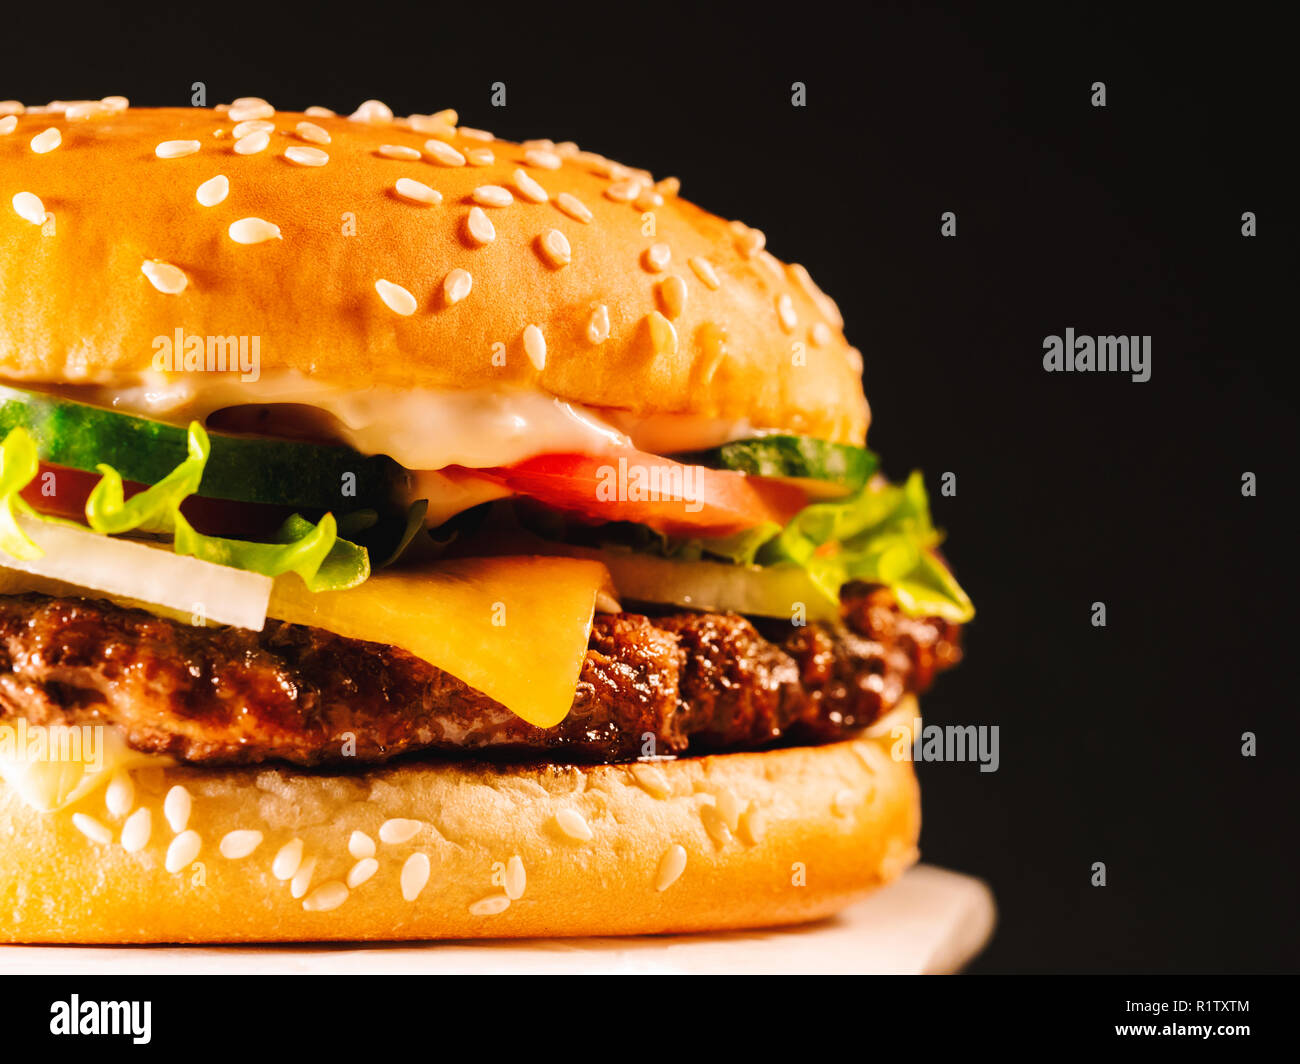 Juicy beef burger with cutlet, onion, vegetables, melted cheese, lettuce, sauce and topped sesame seeds. Isolated hamburger rotates on dark smoke back - Stock Image